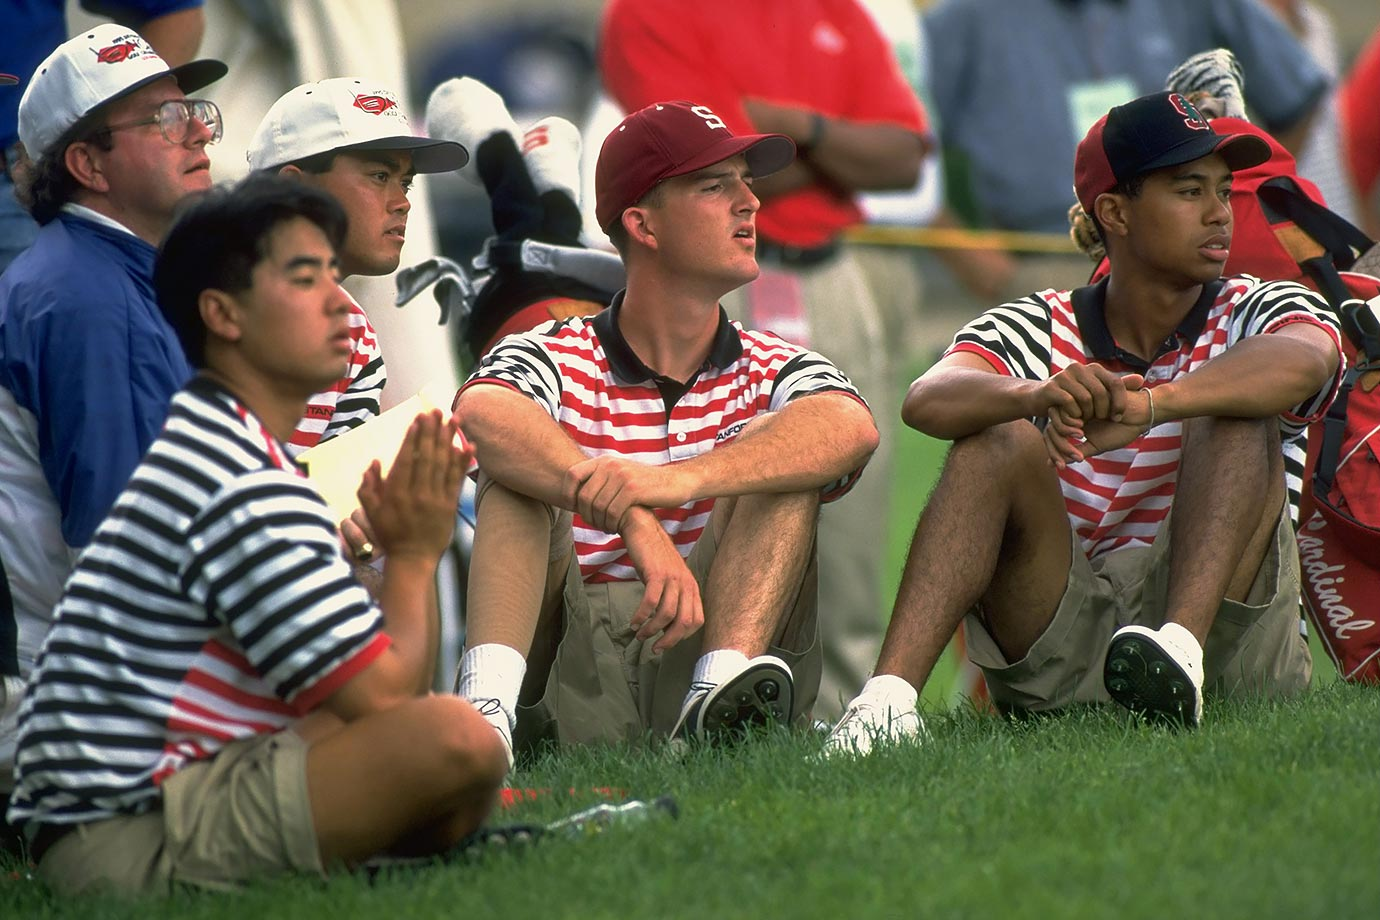 June 1, 1995 — NCAA Men's Golf Championships